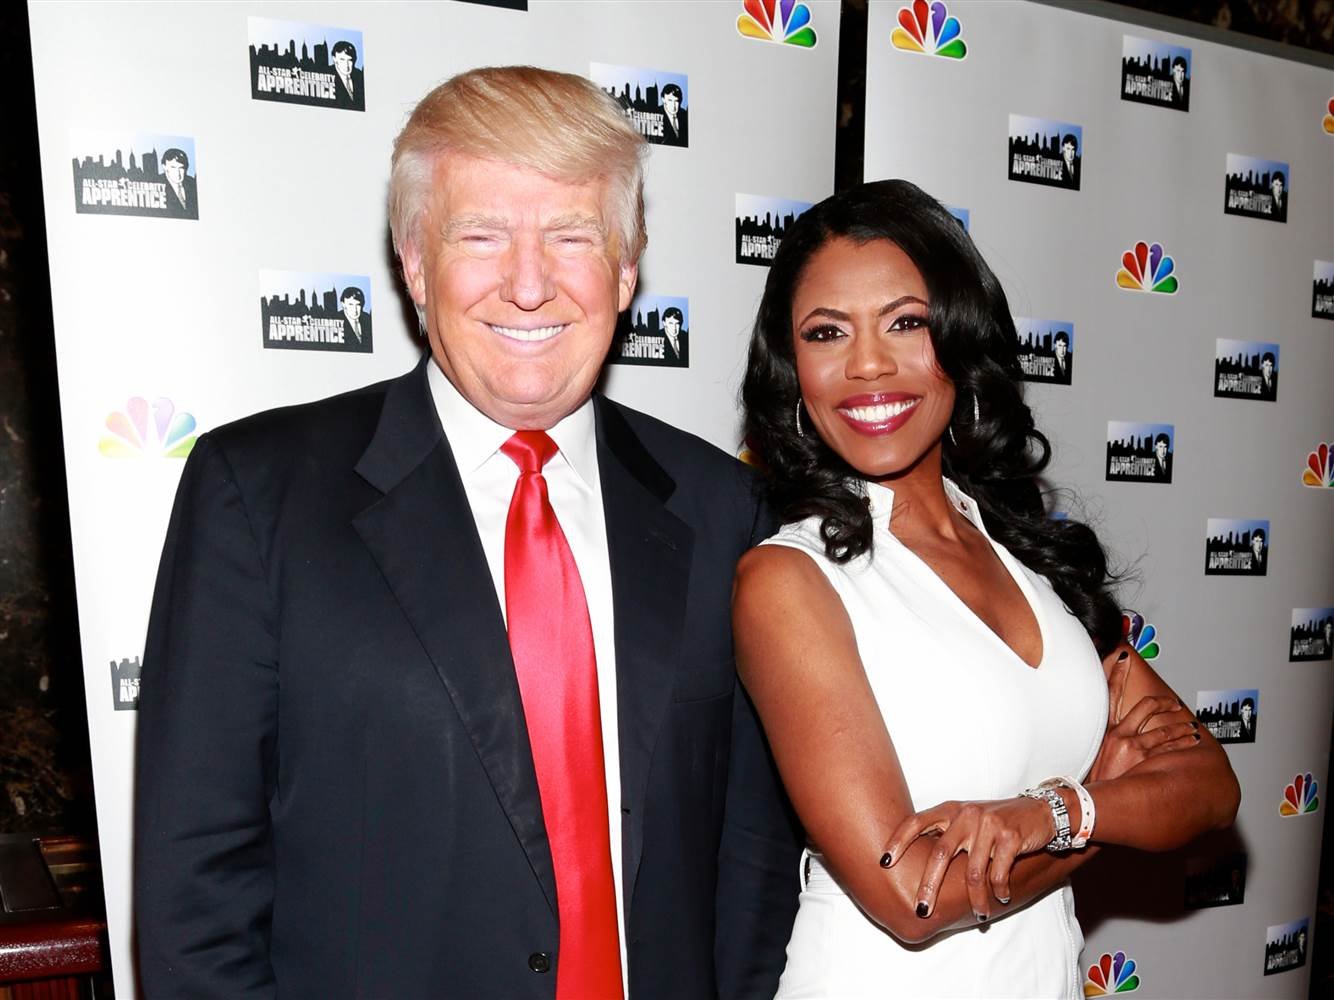 Donald Trump and Apprentice villain Omarosa